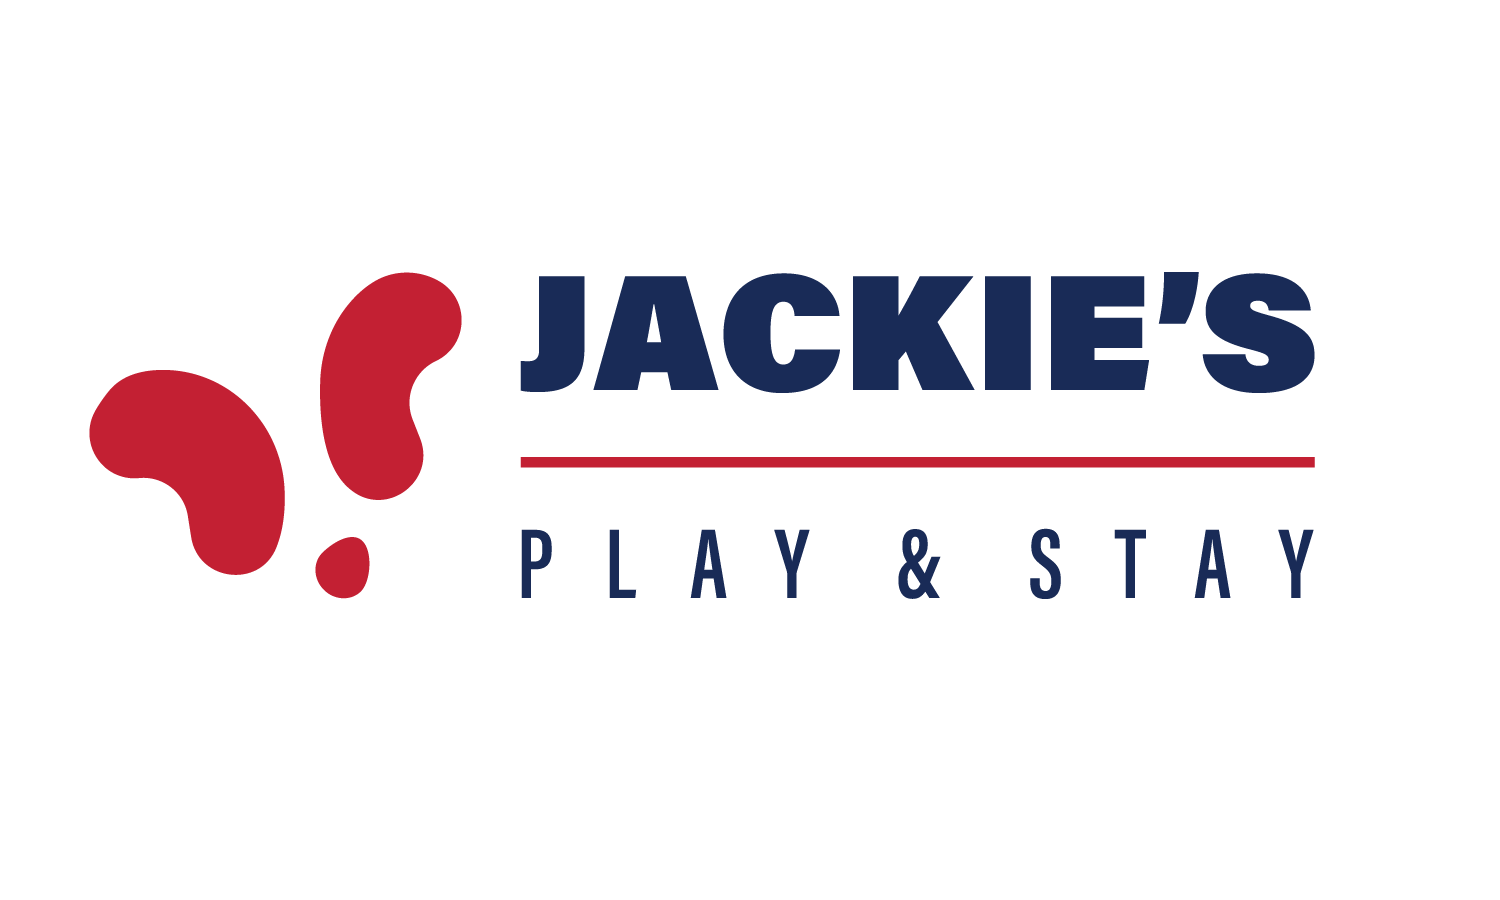 Jackie's Play & Stay